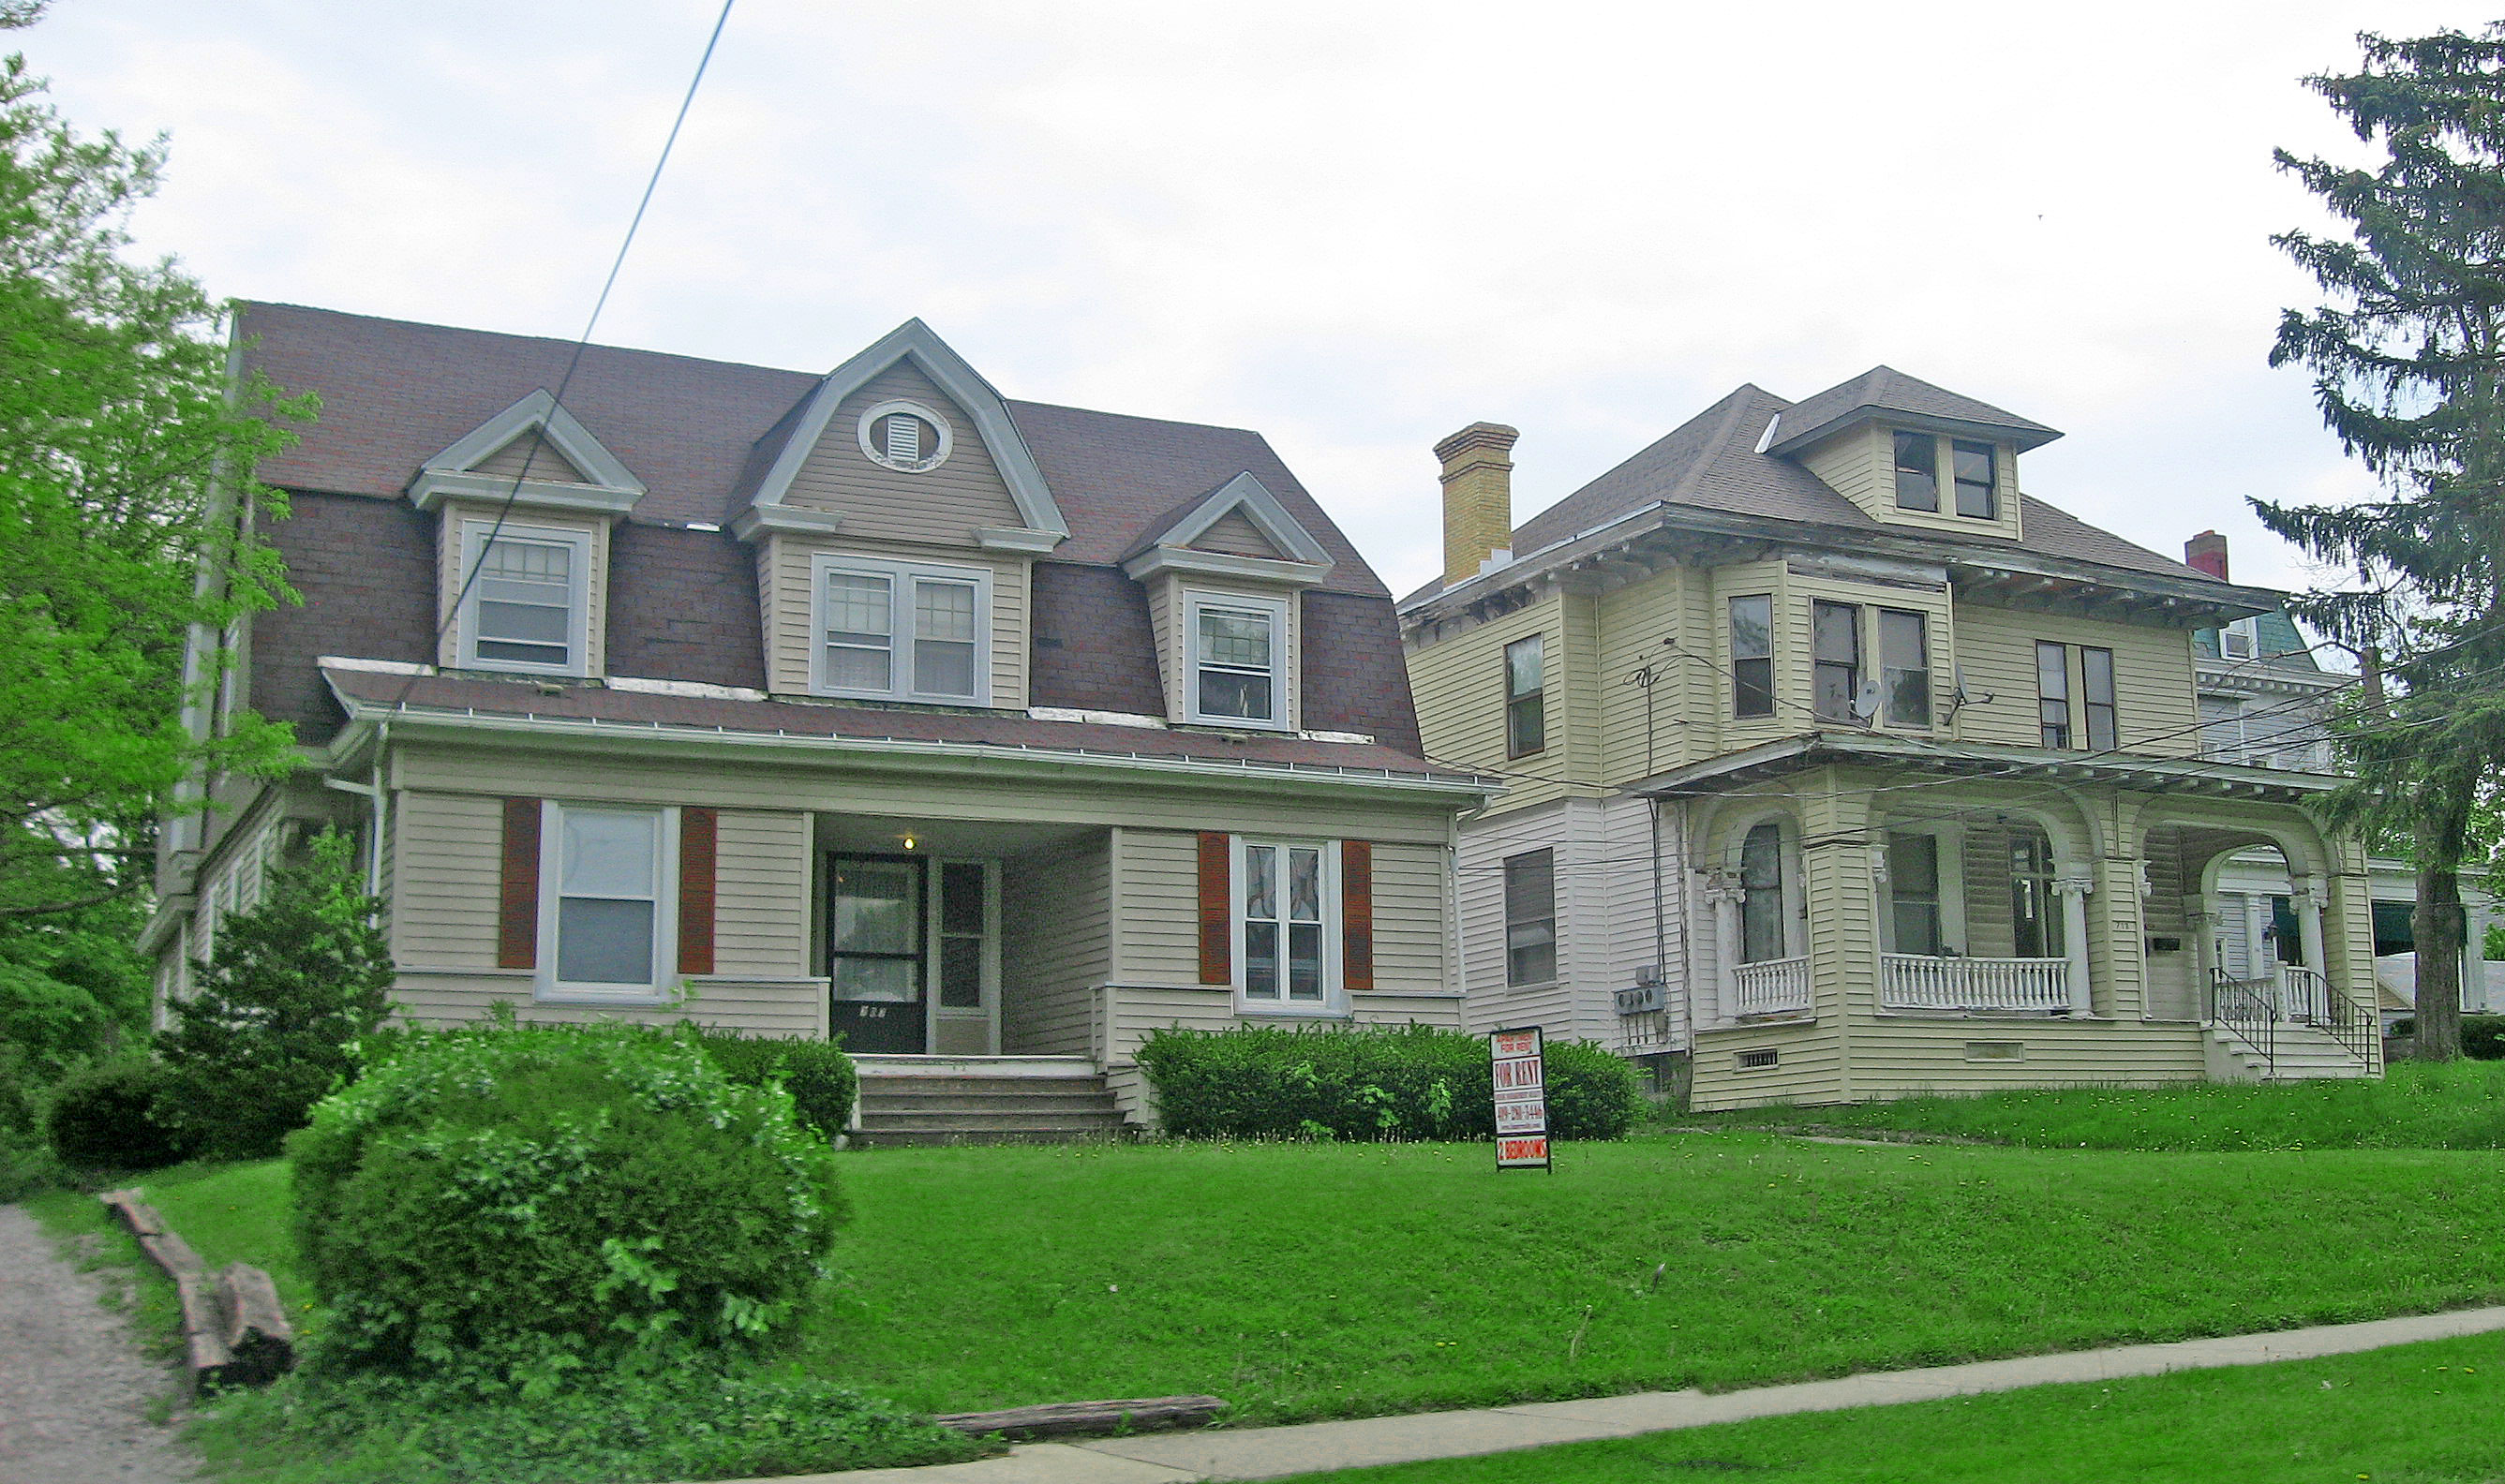 Homes on Center Street (1894 and 1921), Center Street Historic District, Ashland, OH, National Register